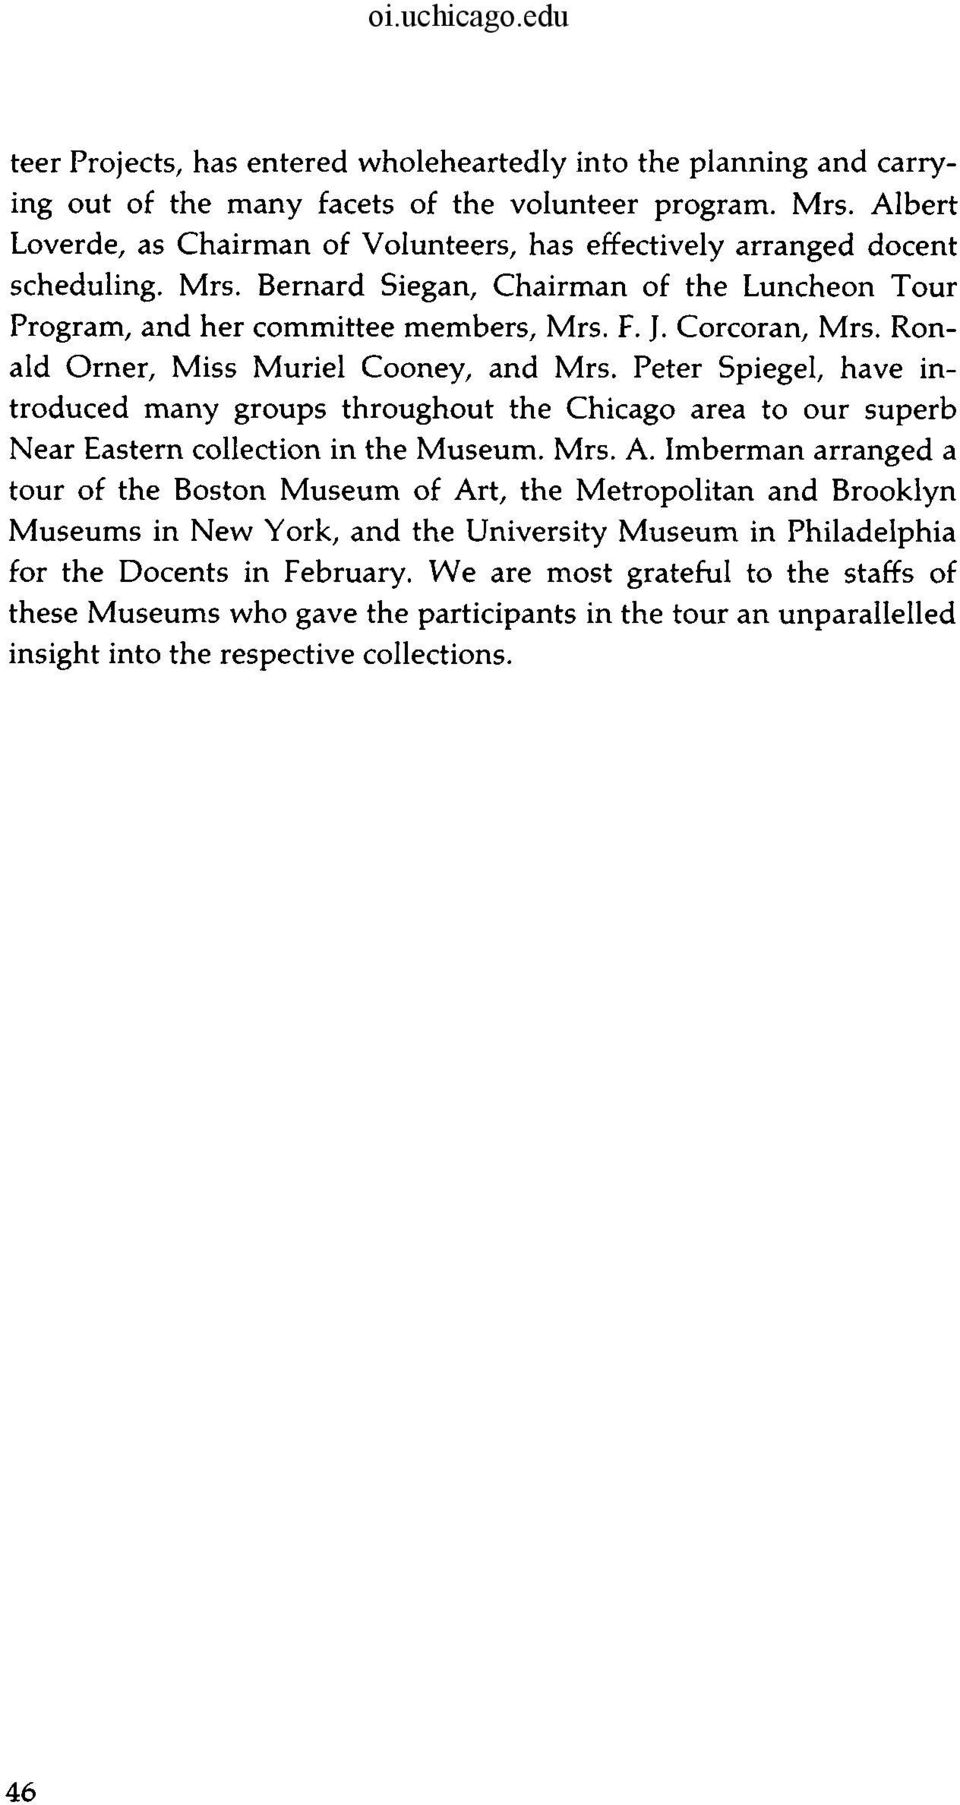 Ronald Orner, Miss Muriel Cooney, and Mrs. Peter Spiegel, have introduced many groups throughout the Chicago area to our superb Near Eastern collection in the Museum. Mrs. A.